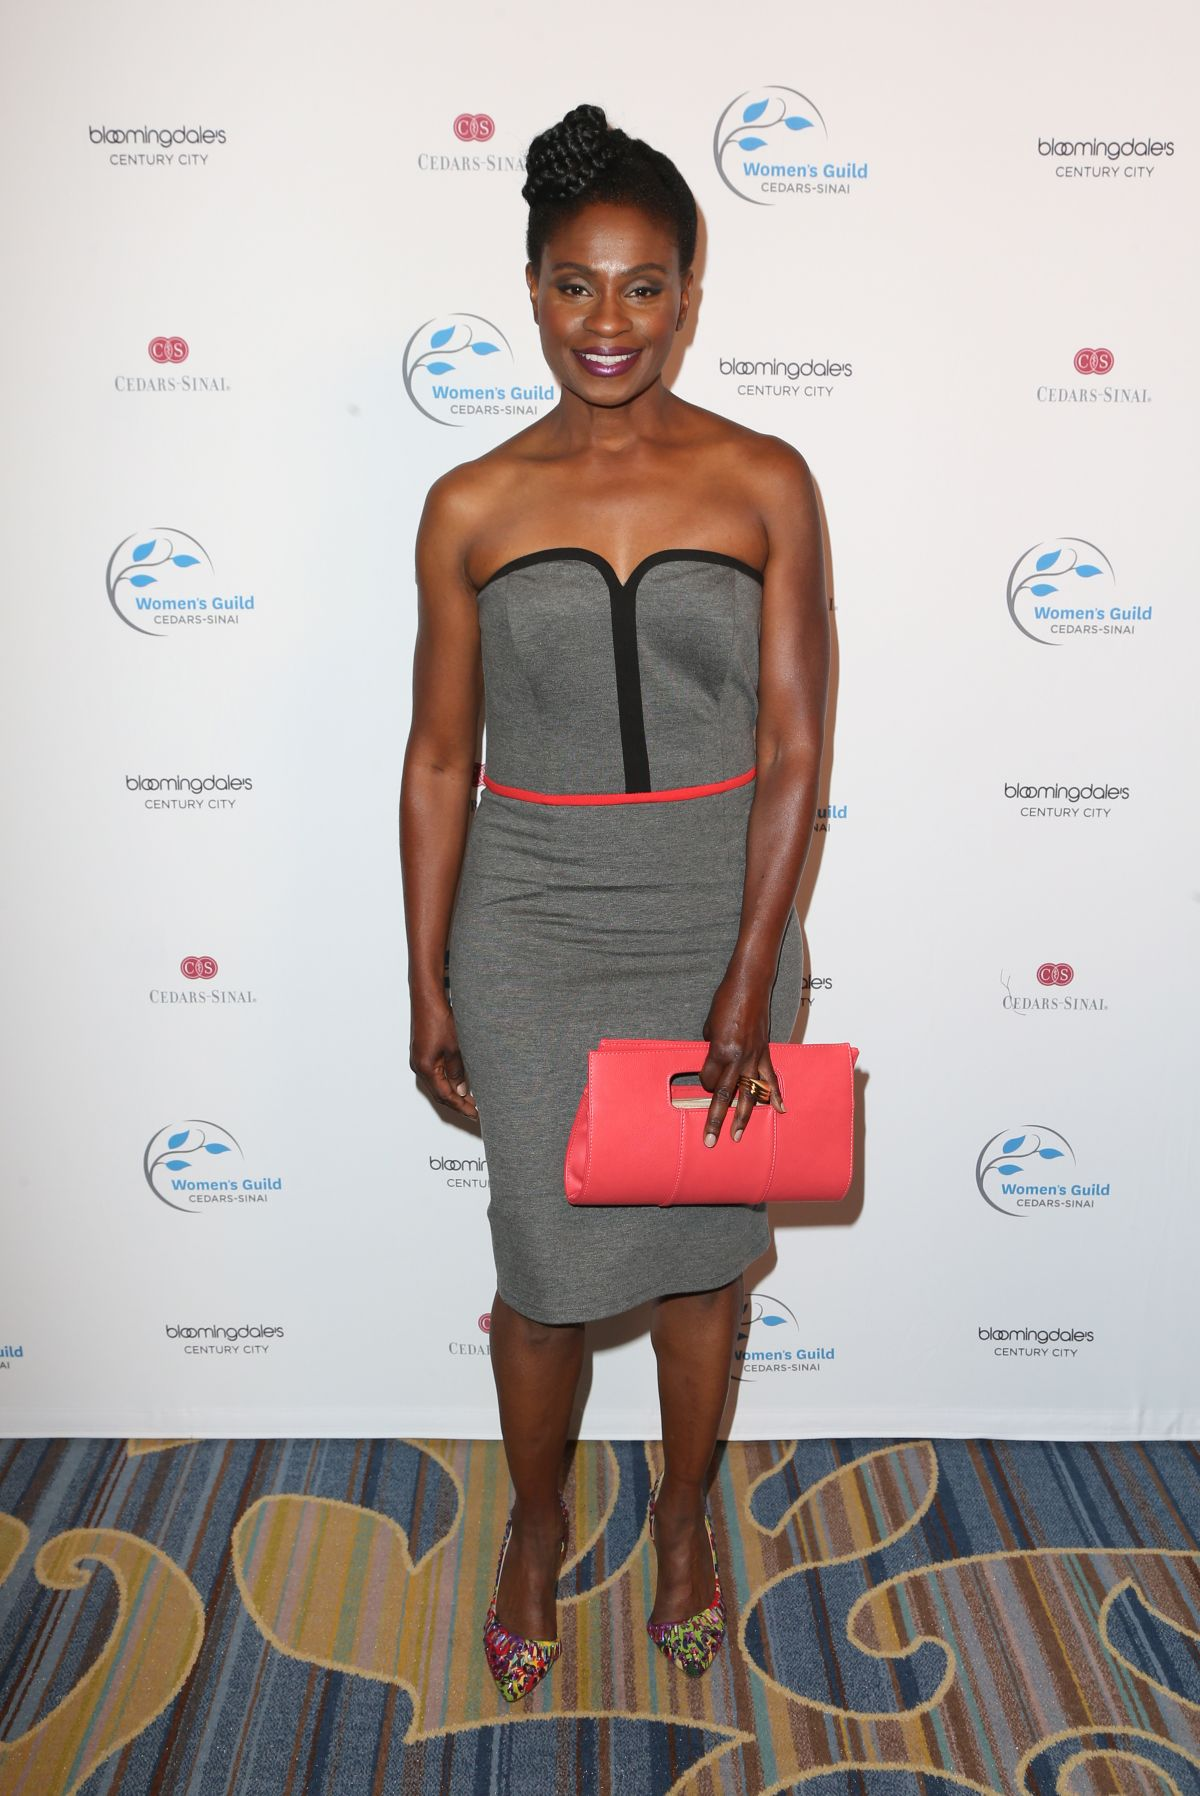 ADINA PORTER at Women's Guild Cedars Sinai Annual Spring Luncheon in Los Angeles 04/20/2017   adina-porter-at-women-s-guild-cedars-sinai-annual-spring-luncheon-in-los-angeles-04-20-2017_6